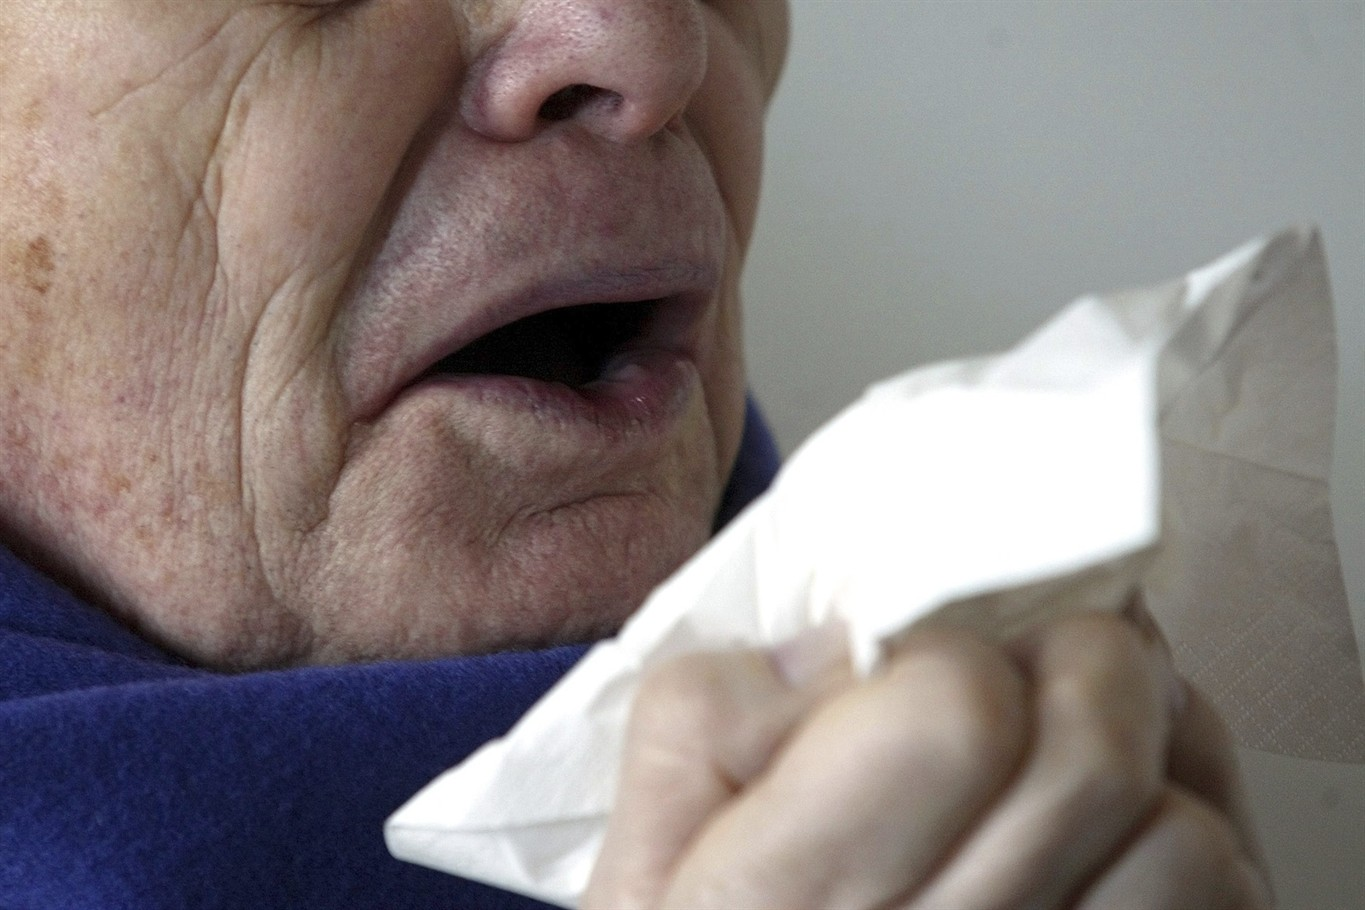 Man's throat ruptured after holding his nose during forceful sneeze